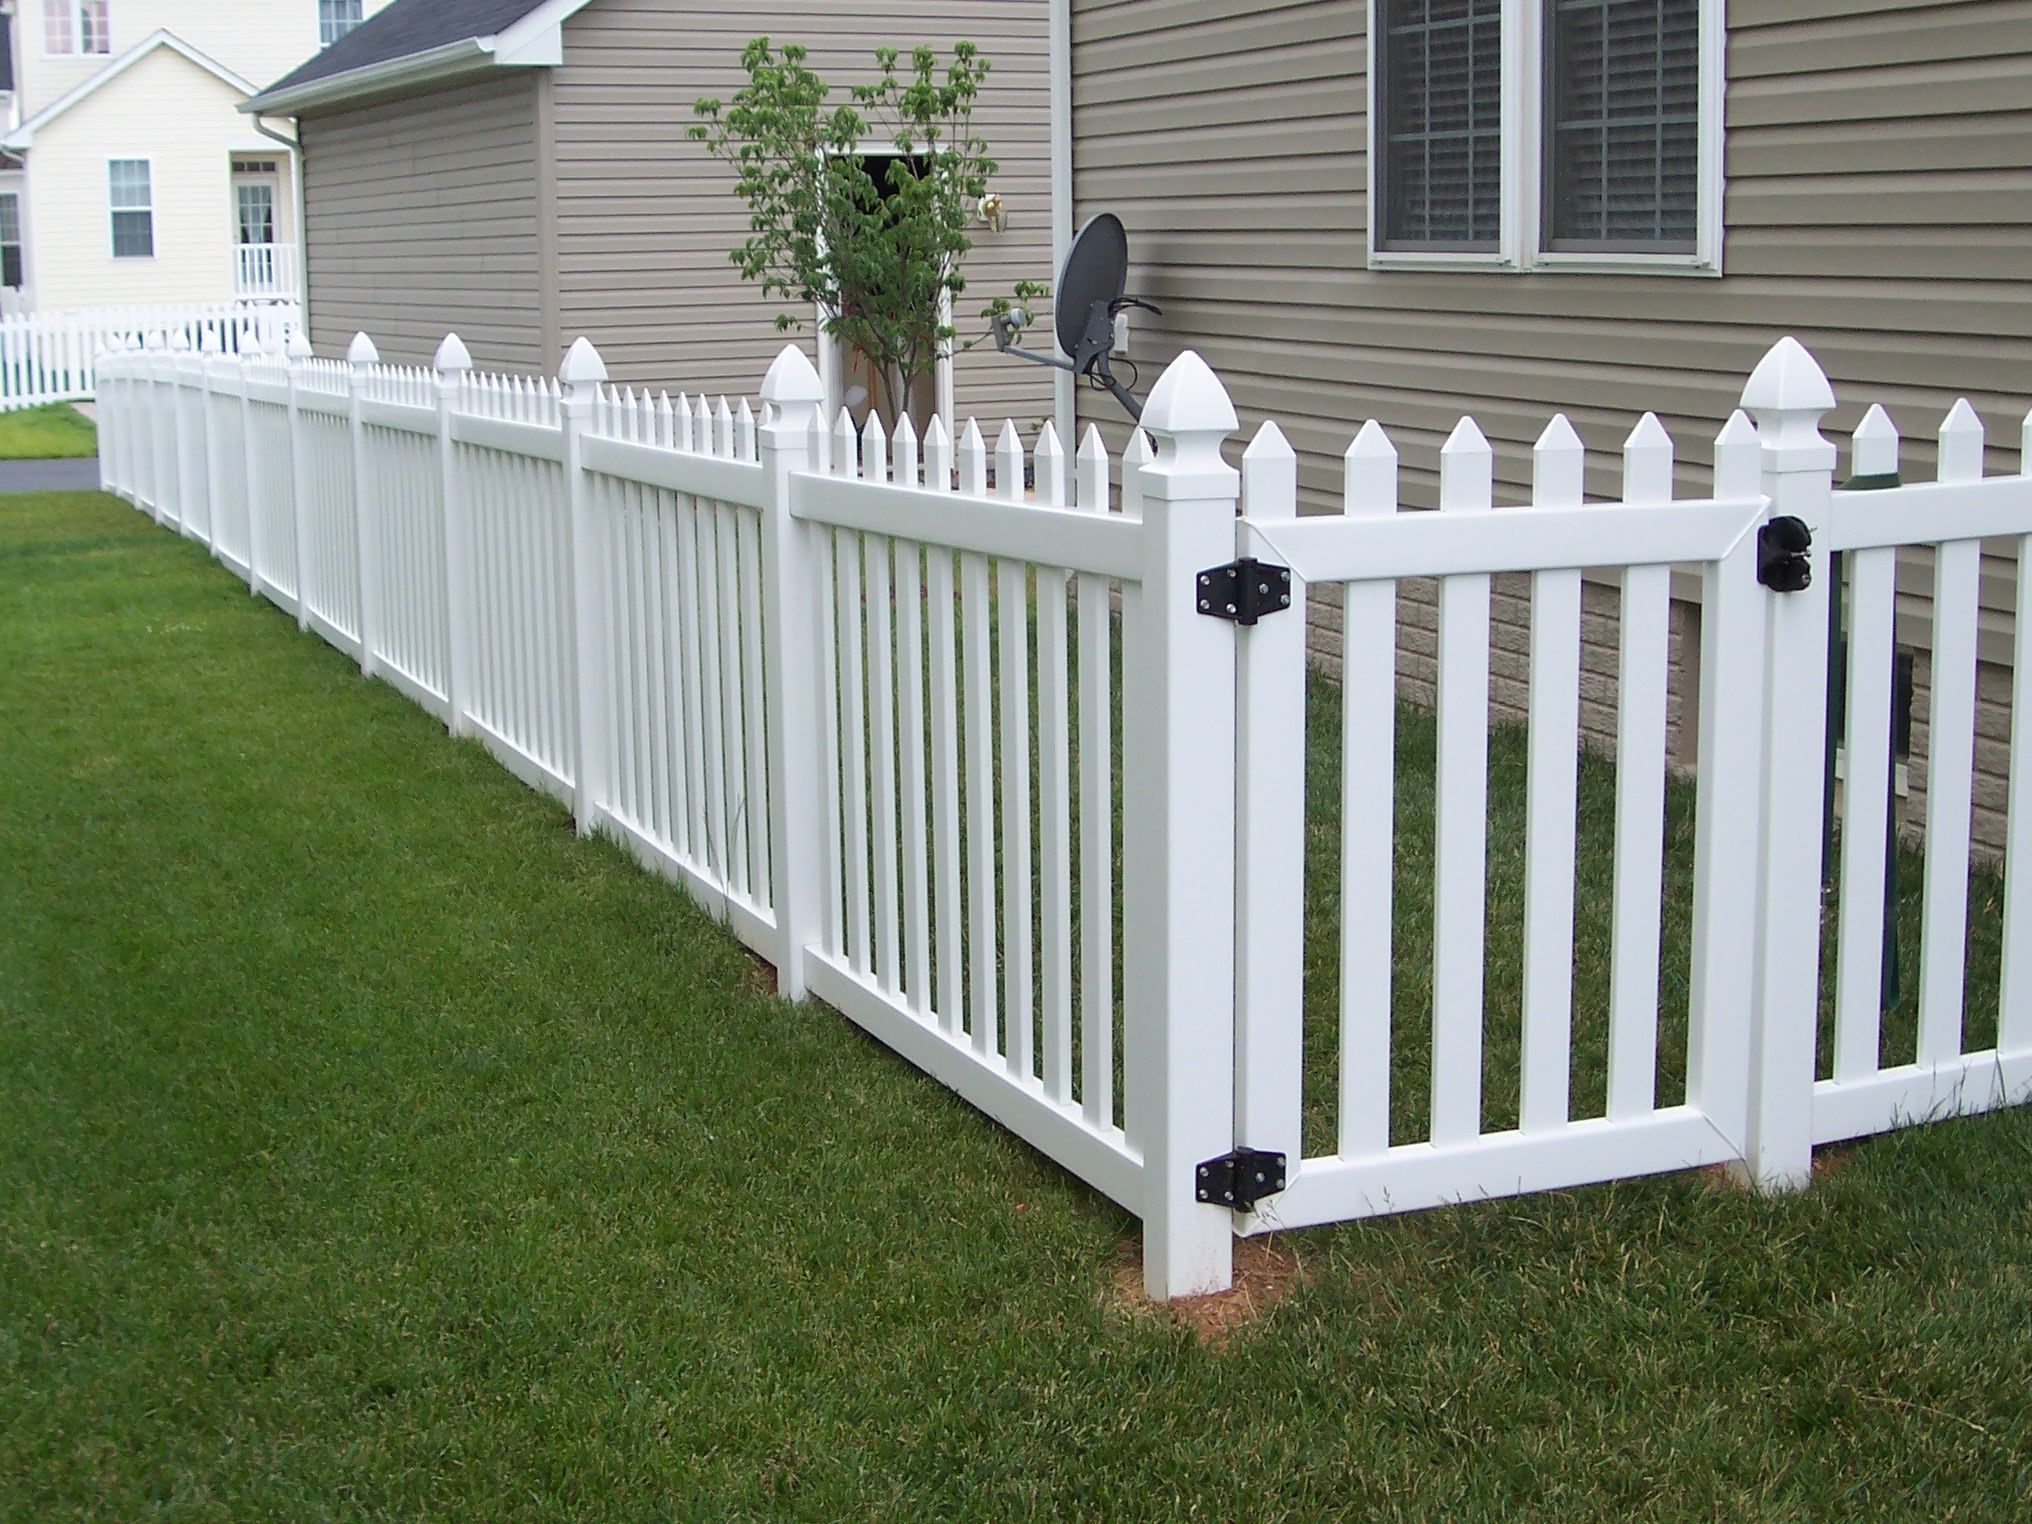 Contemporary Vinyl Fence With Gothic Post Caps And Single Gate Vinyl Picket Fence Backyard Fences Picket Fence